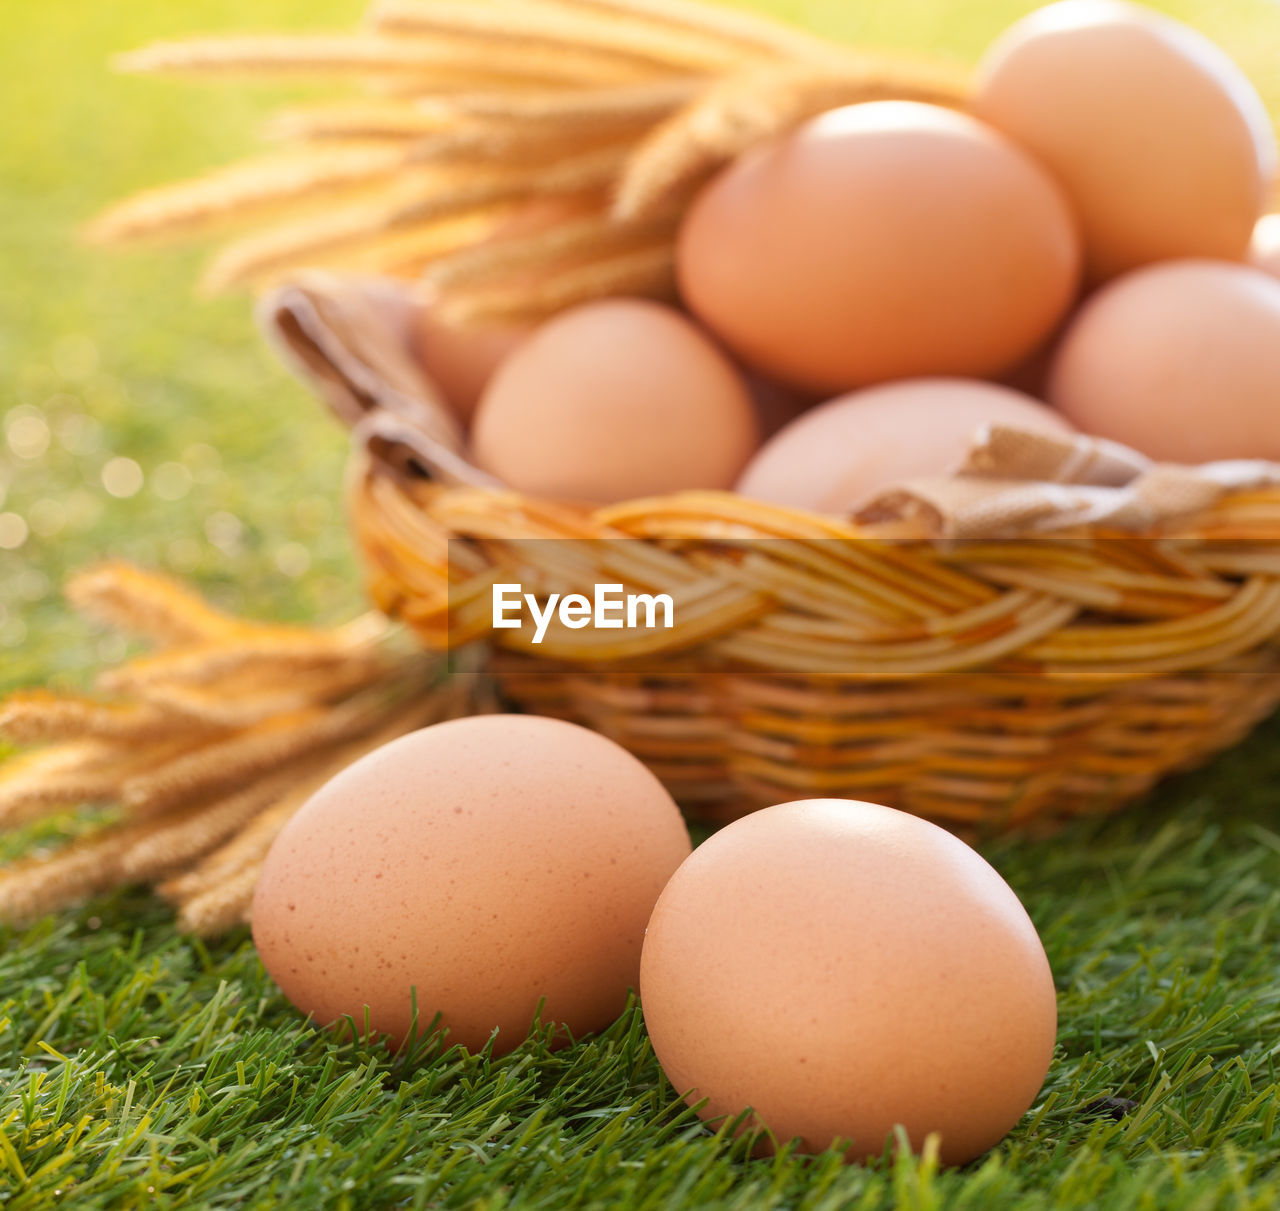 egg, food and drink, food, freshness, basket, grass, close-up, healthy eating, nature, no people, still life, brown, container, wellbeing, plant, day, fragility, selective focus, animal egg, raw food